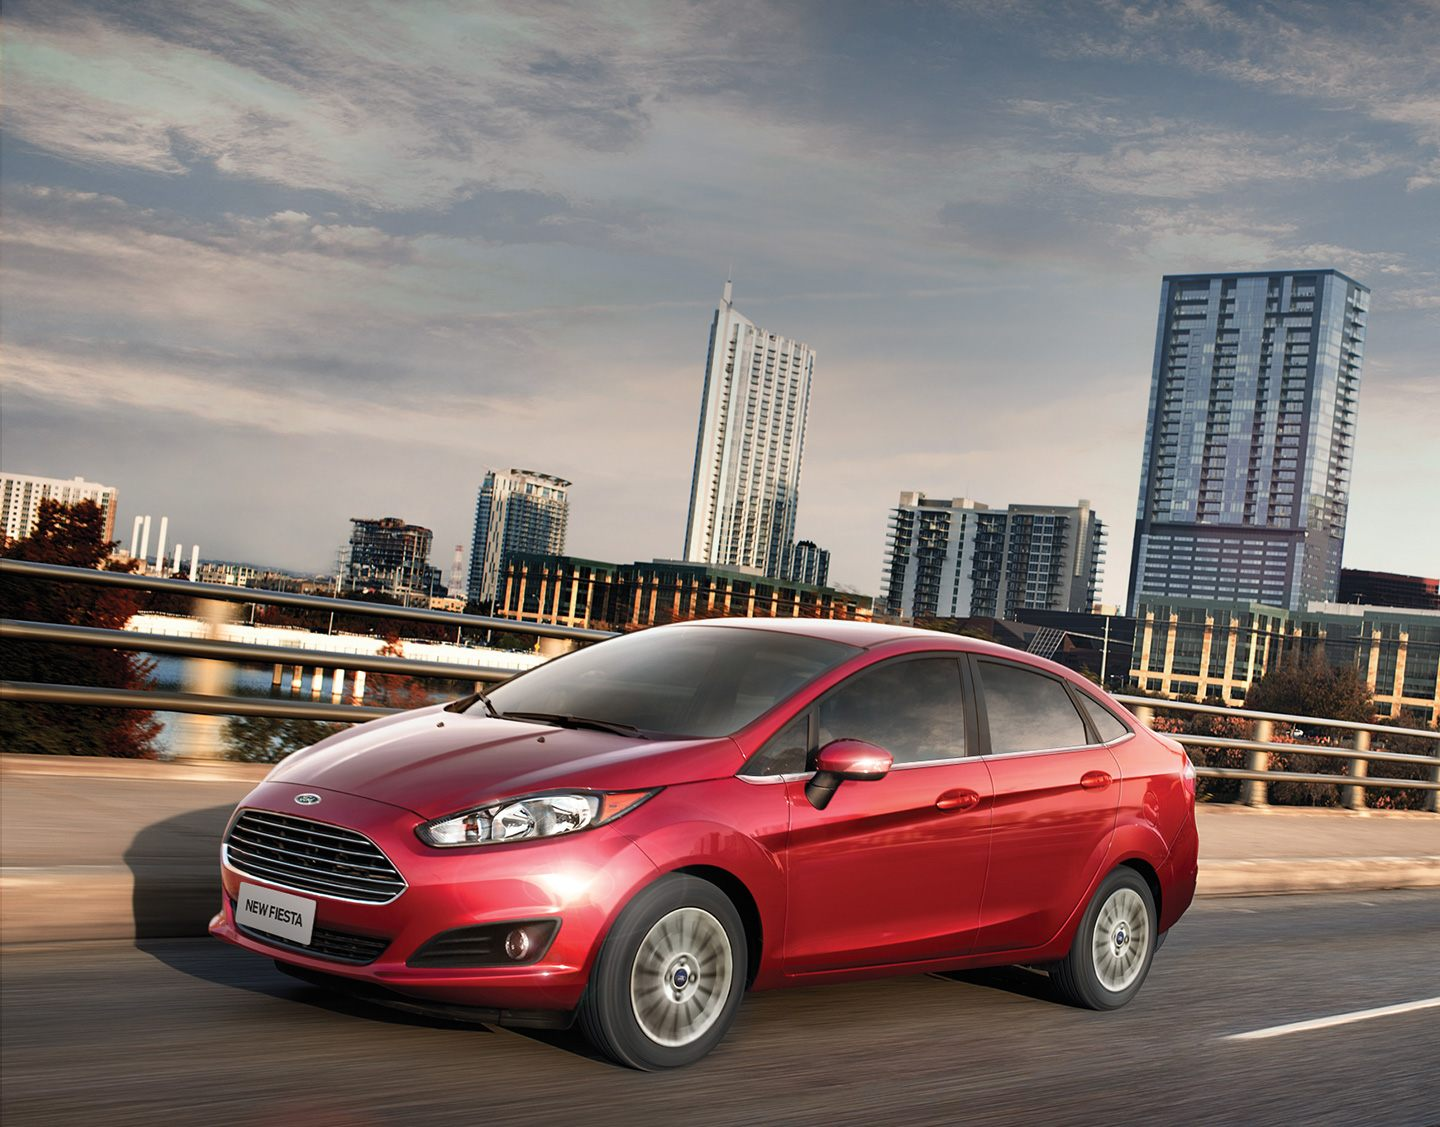 Ford New Fiesta Sedan Surpreenda-se com o New Fiesta Sedan.